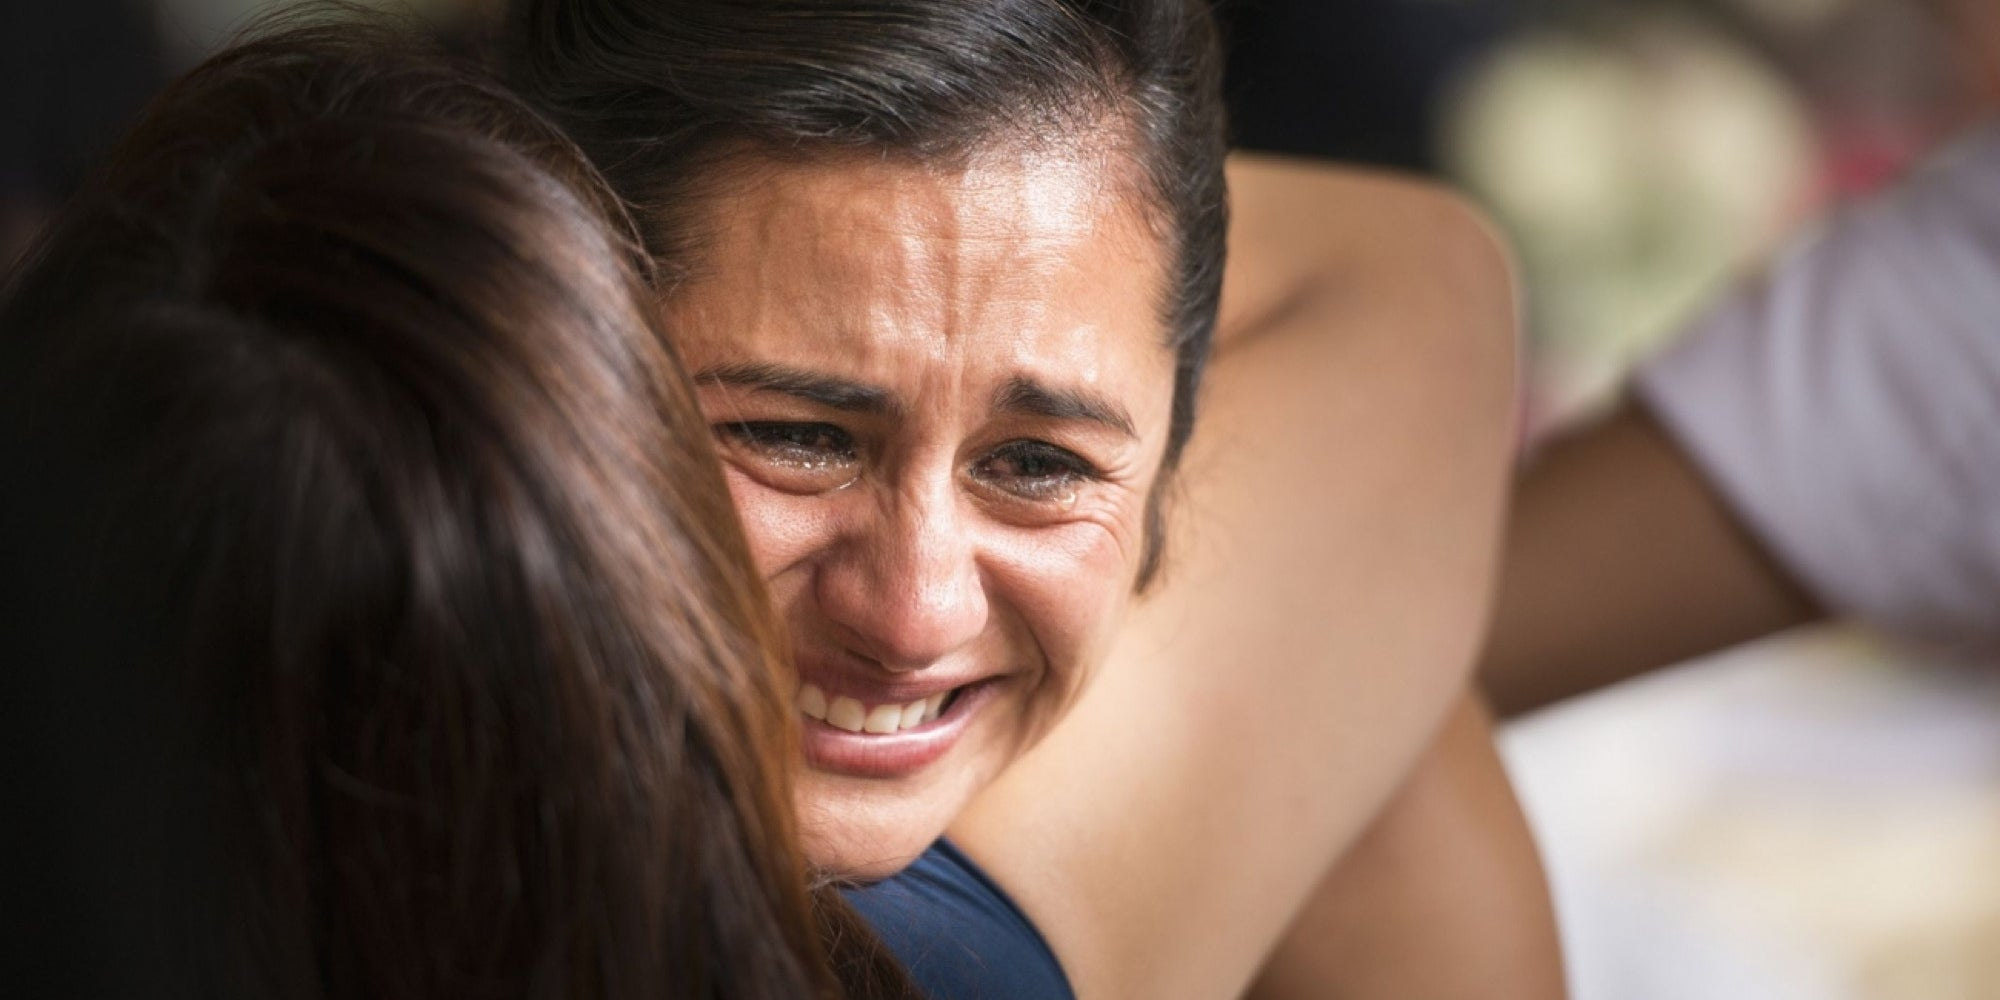 Prepare for Happy Tears: 5 Times Tech Improved People's Lives